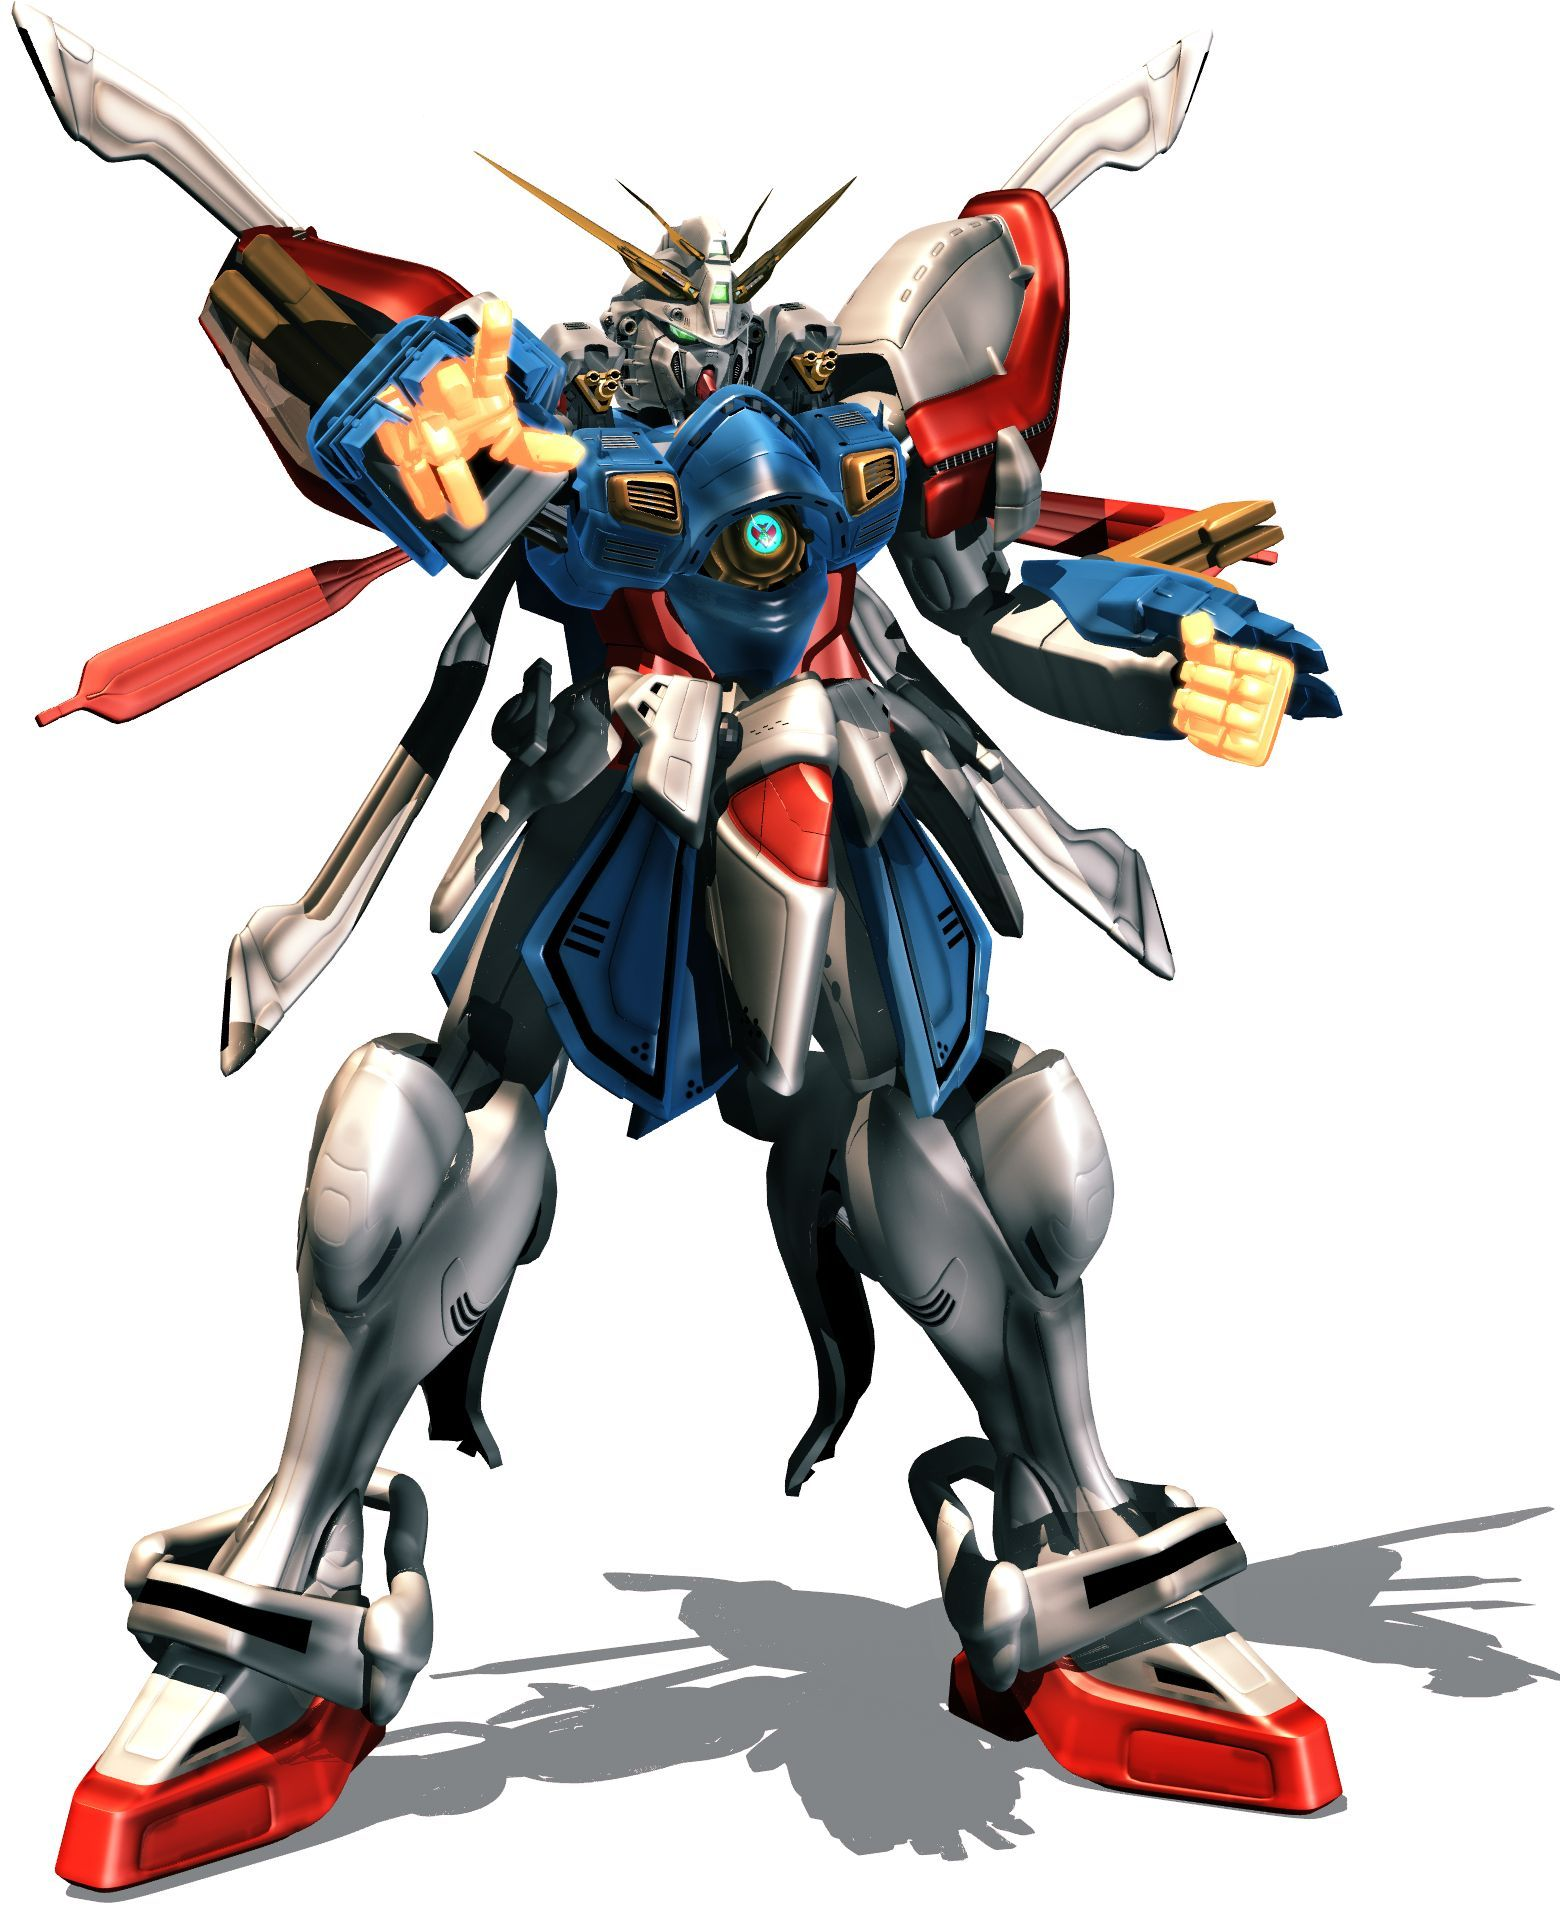 Gundam gundam gundam gundam gundam gundam pinterest for Domon kasshu build fighters try